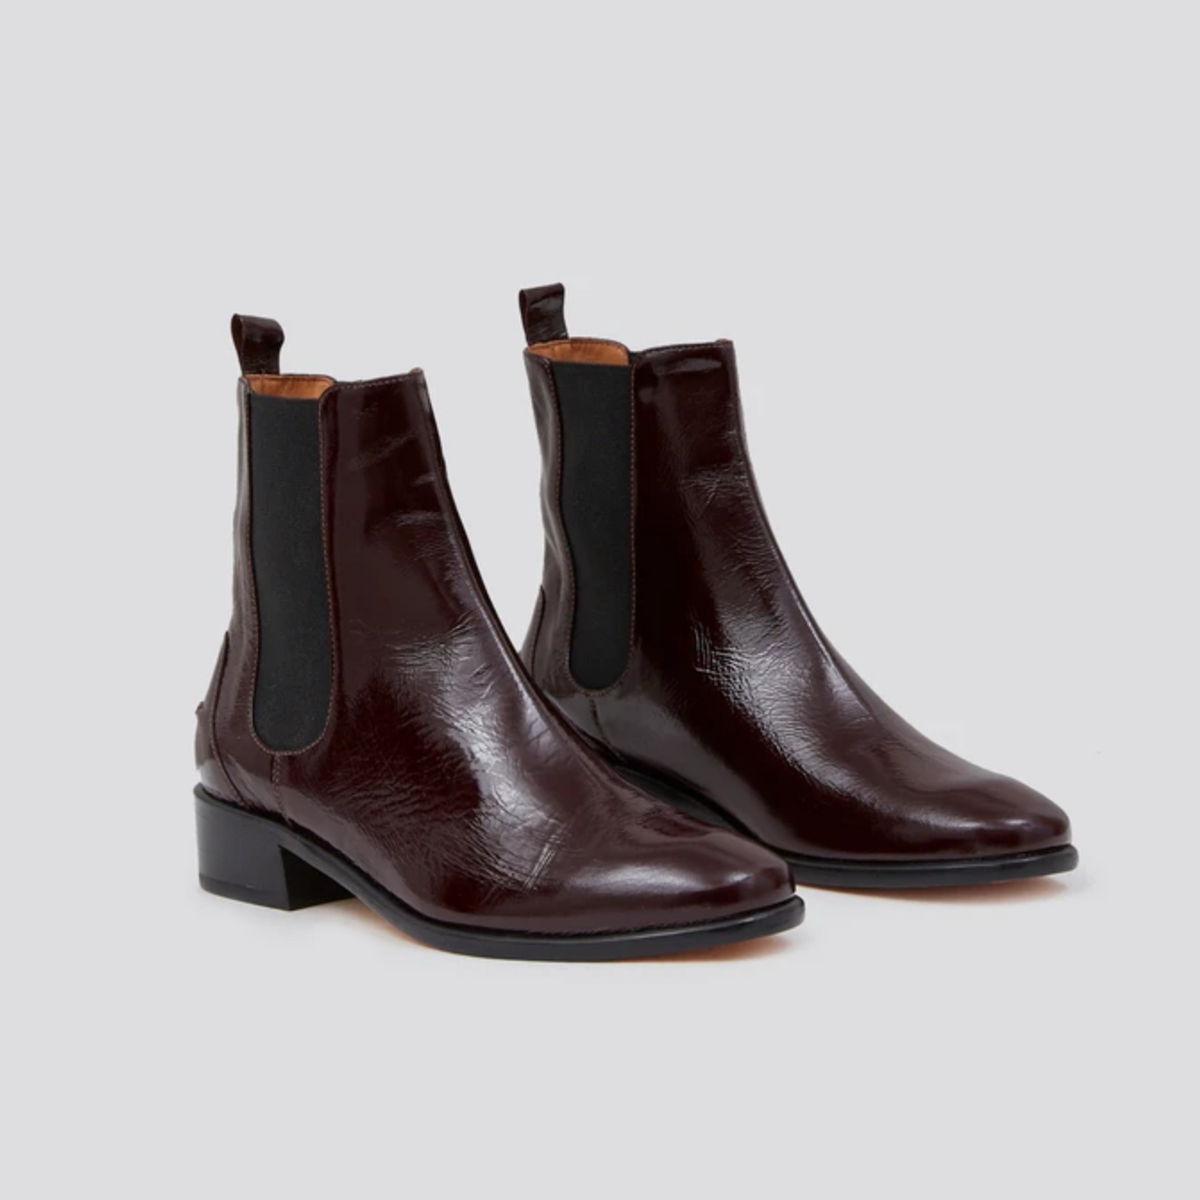 21 Best Chelsea Boots 2020 | The